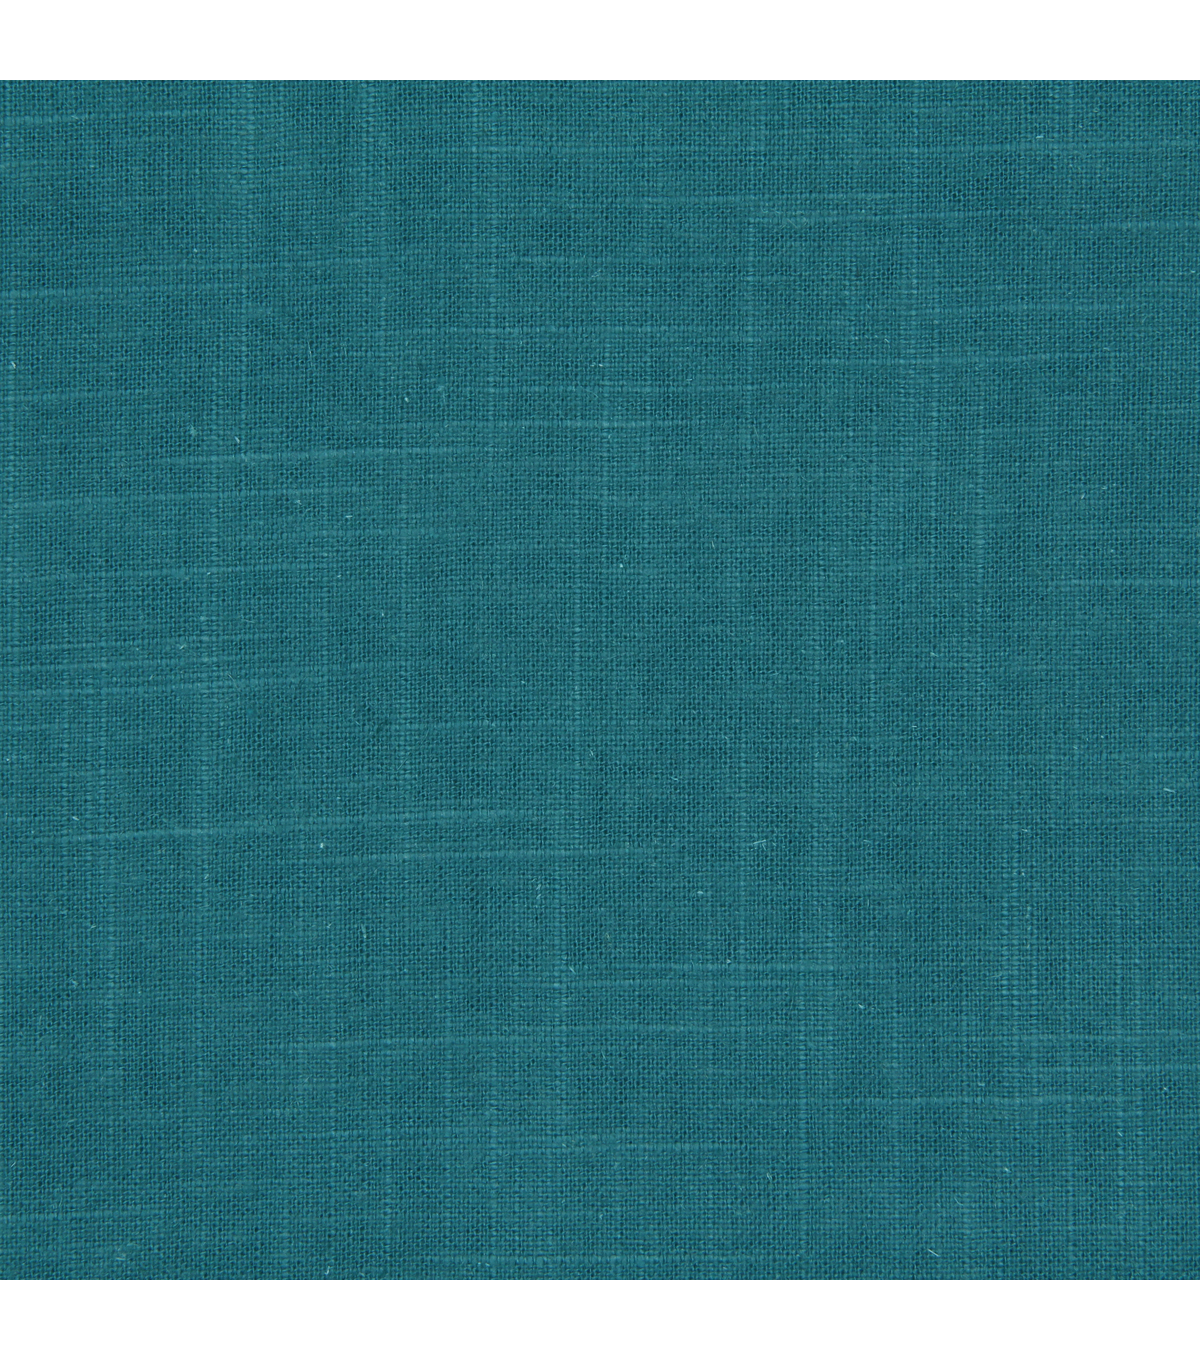 Home Decor 8\u0022x8\u0022 Fabric Swatch-Linen Slub / Turquoise